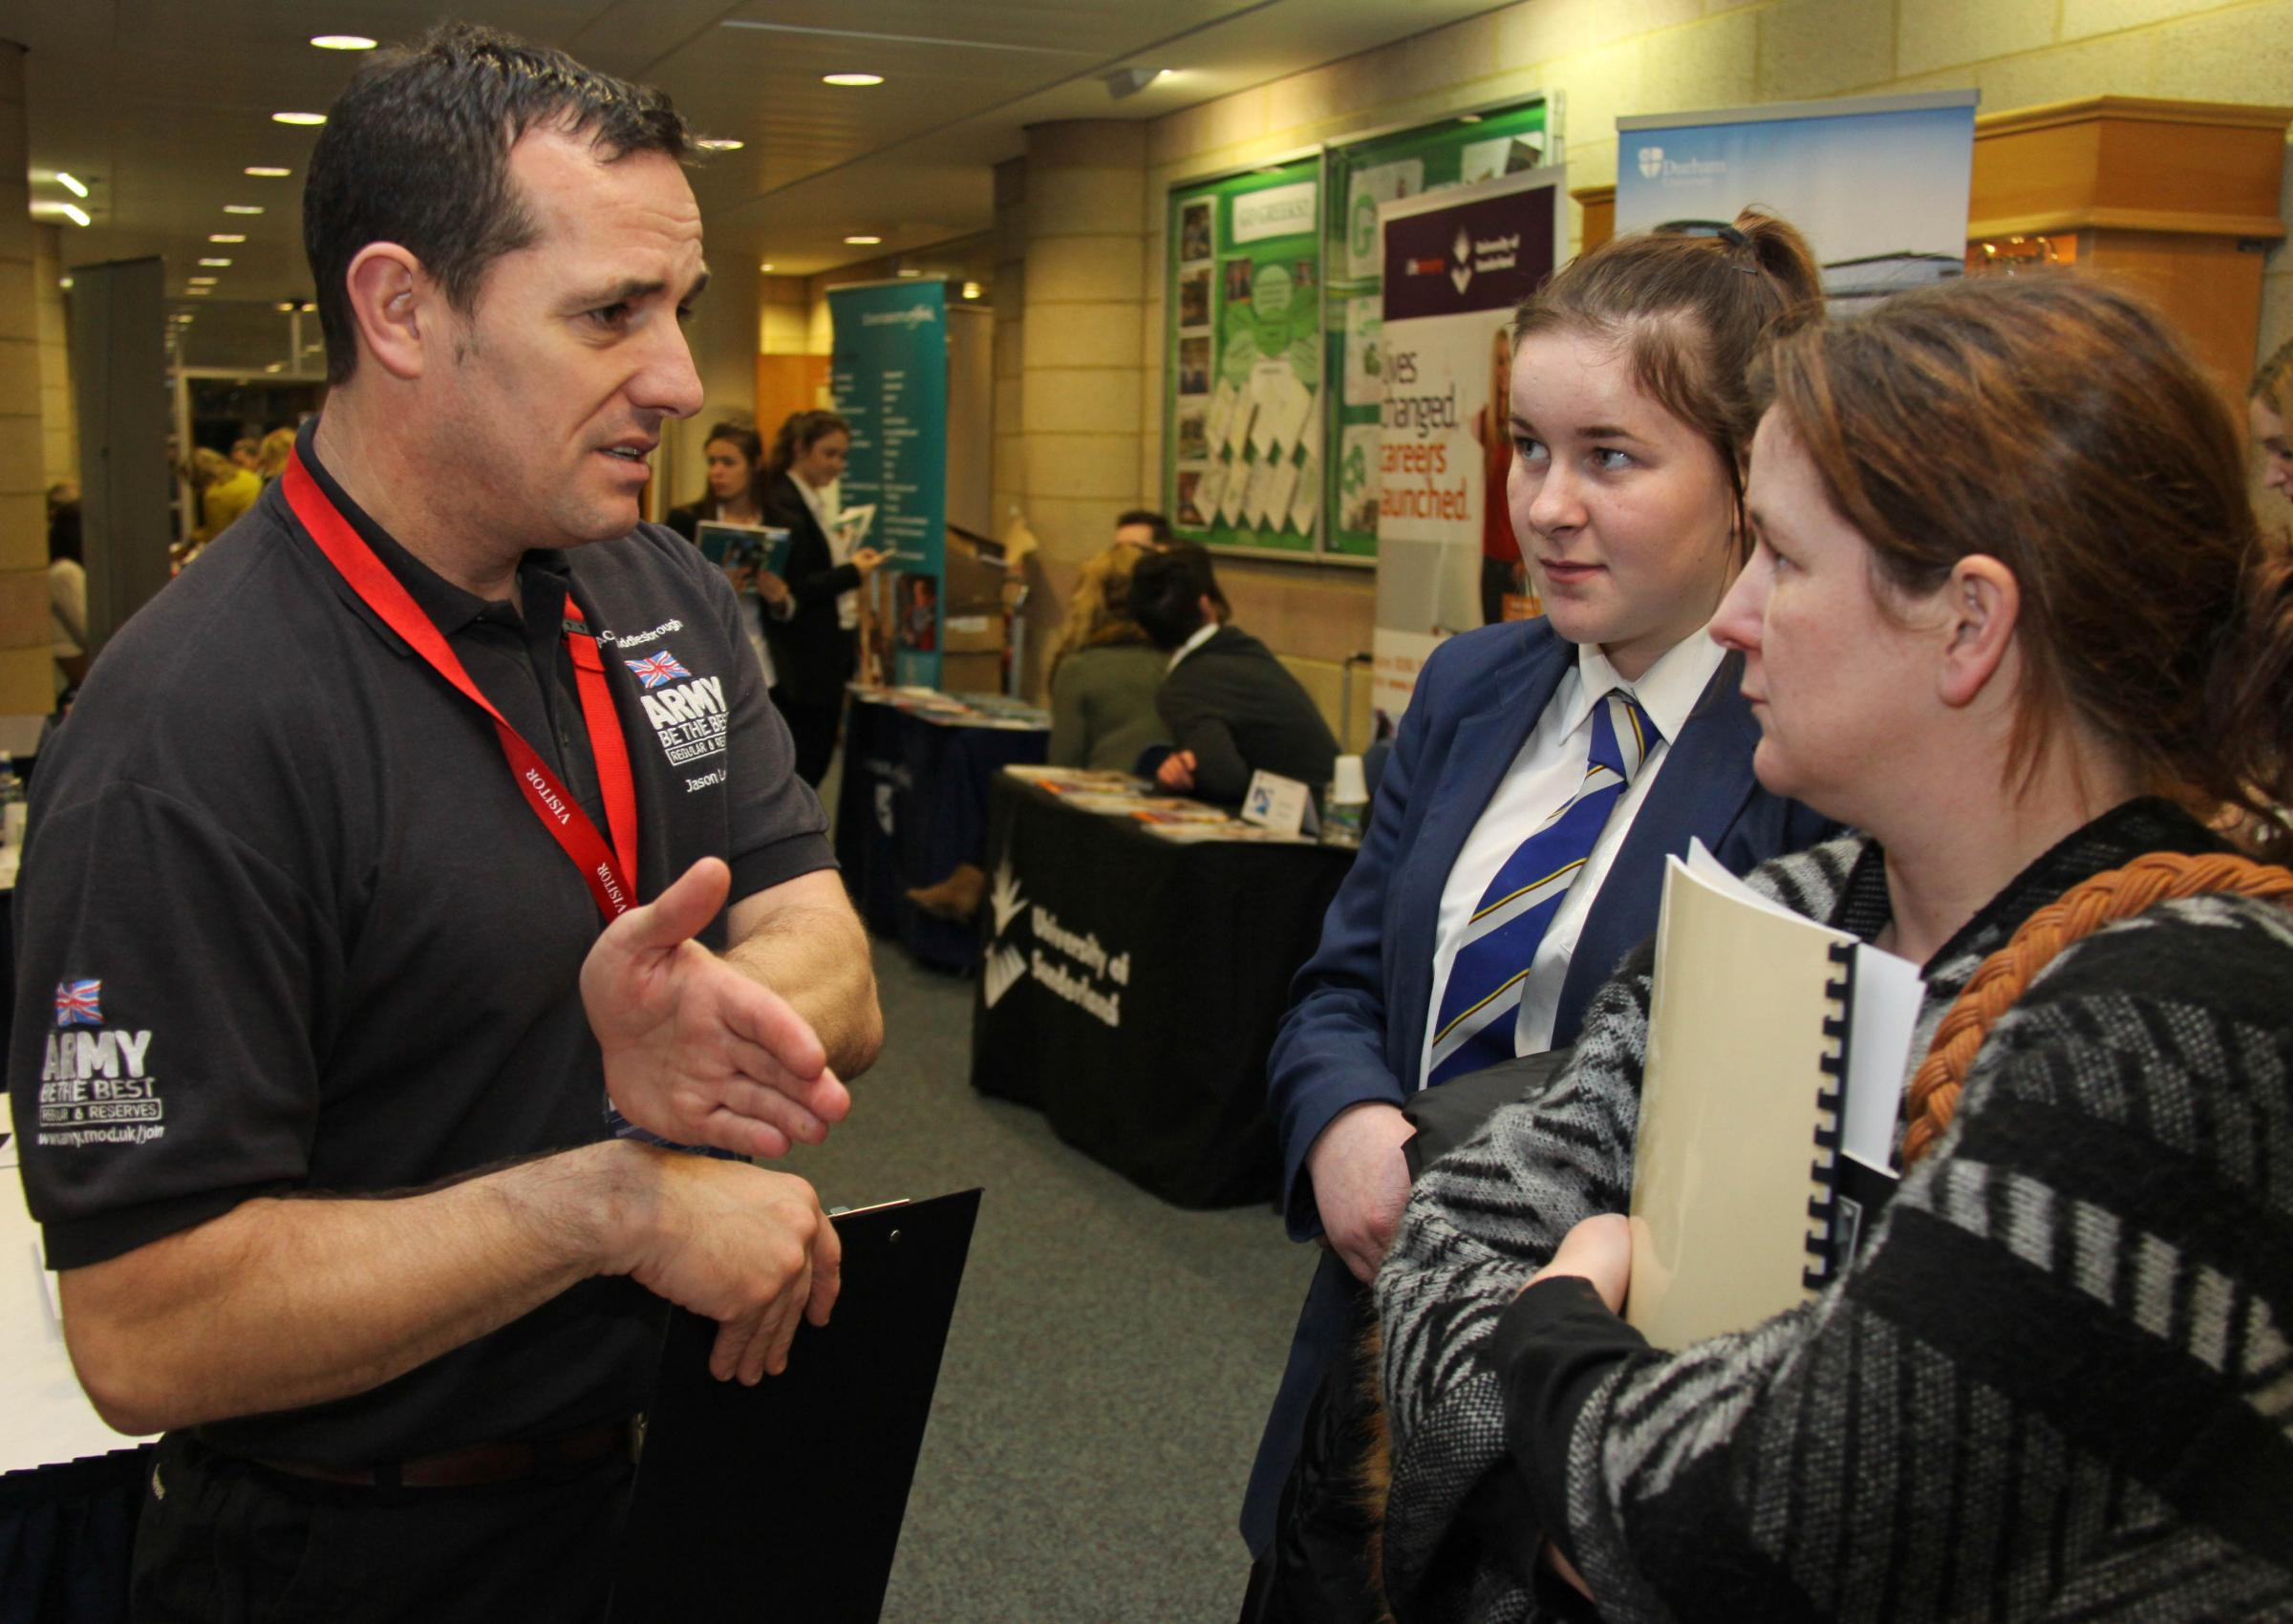 Pupils learning about the Army at a school careers fair